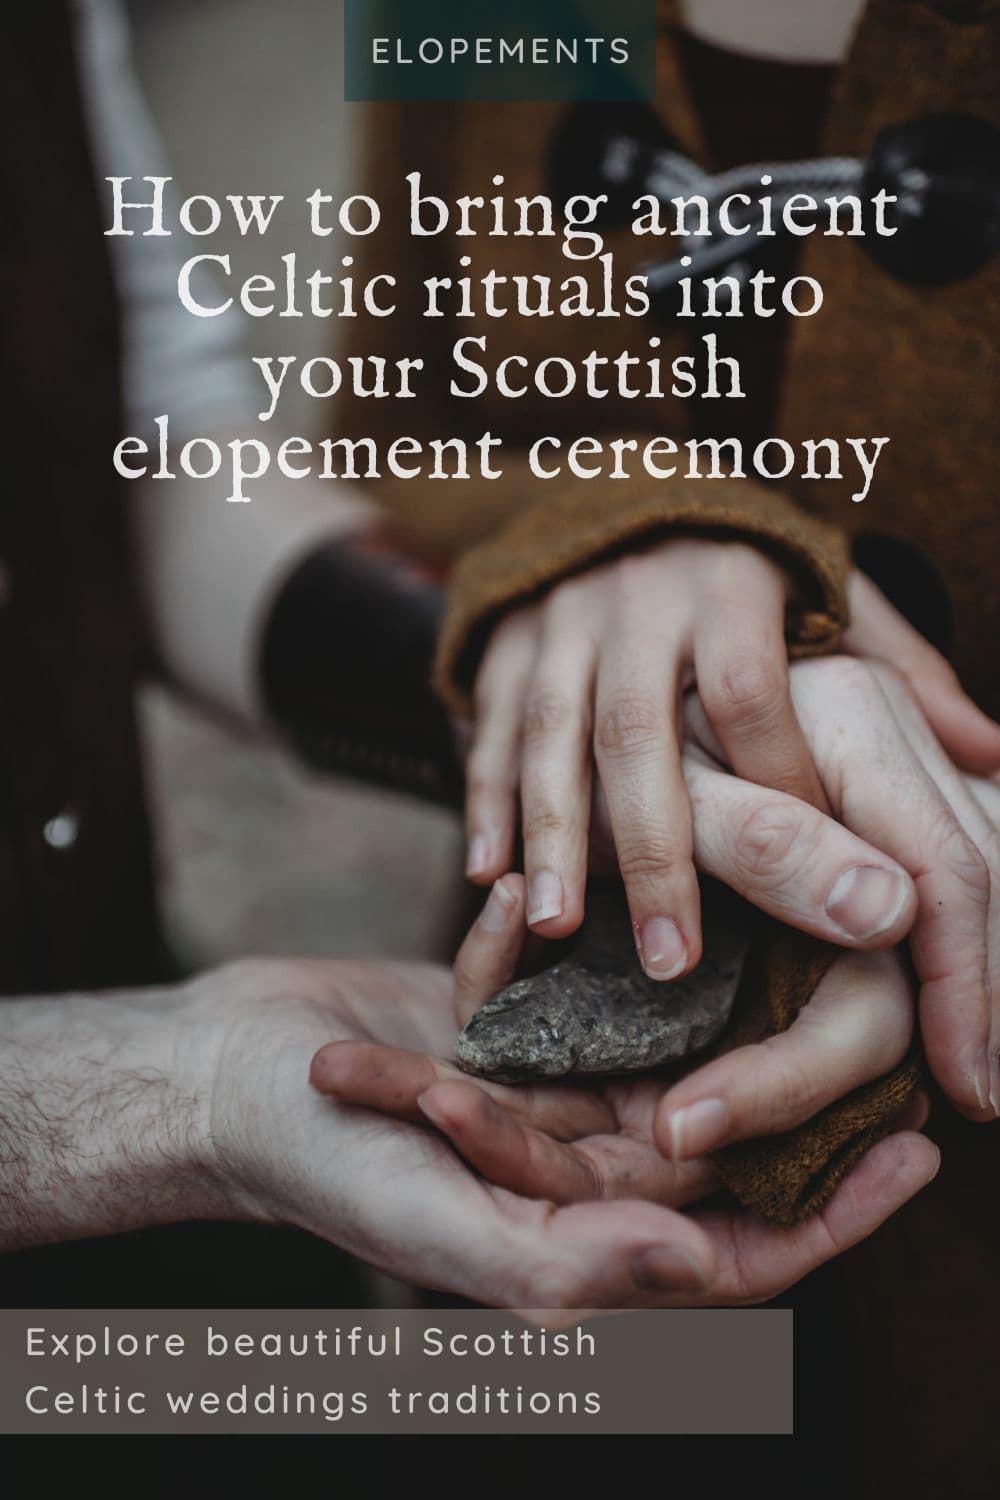 Guide - Celtic scottish wedding traditions